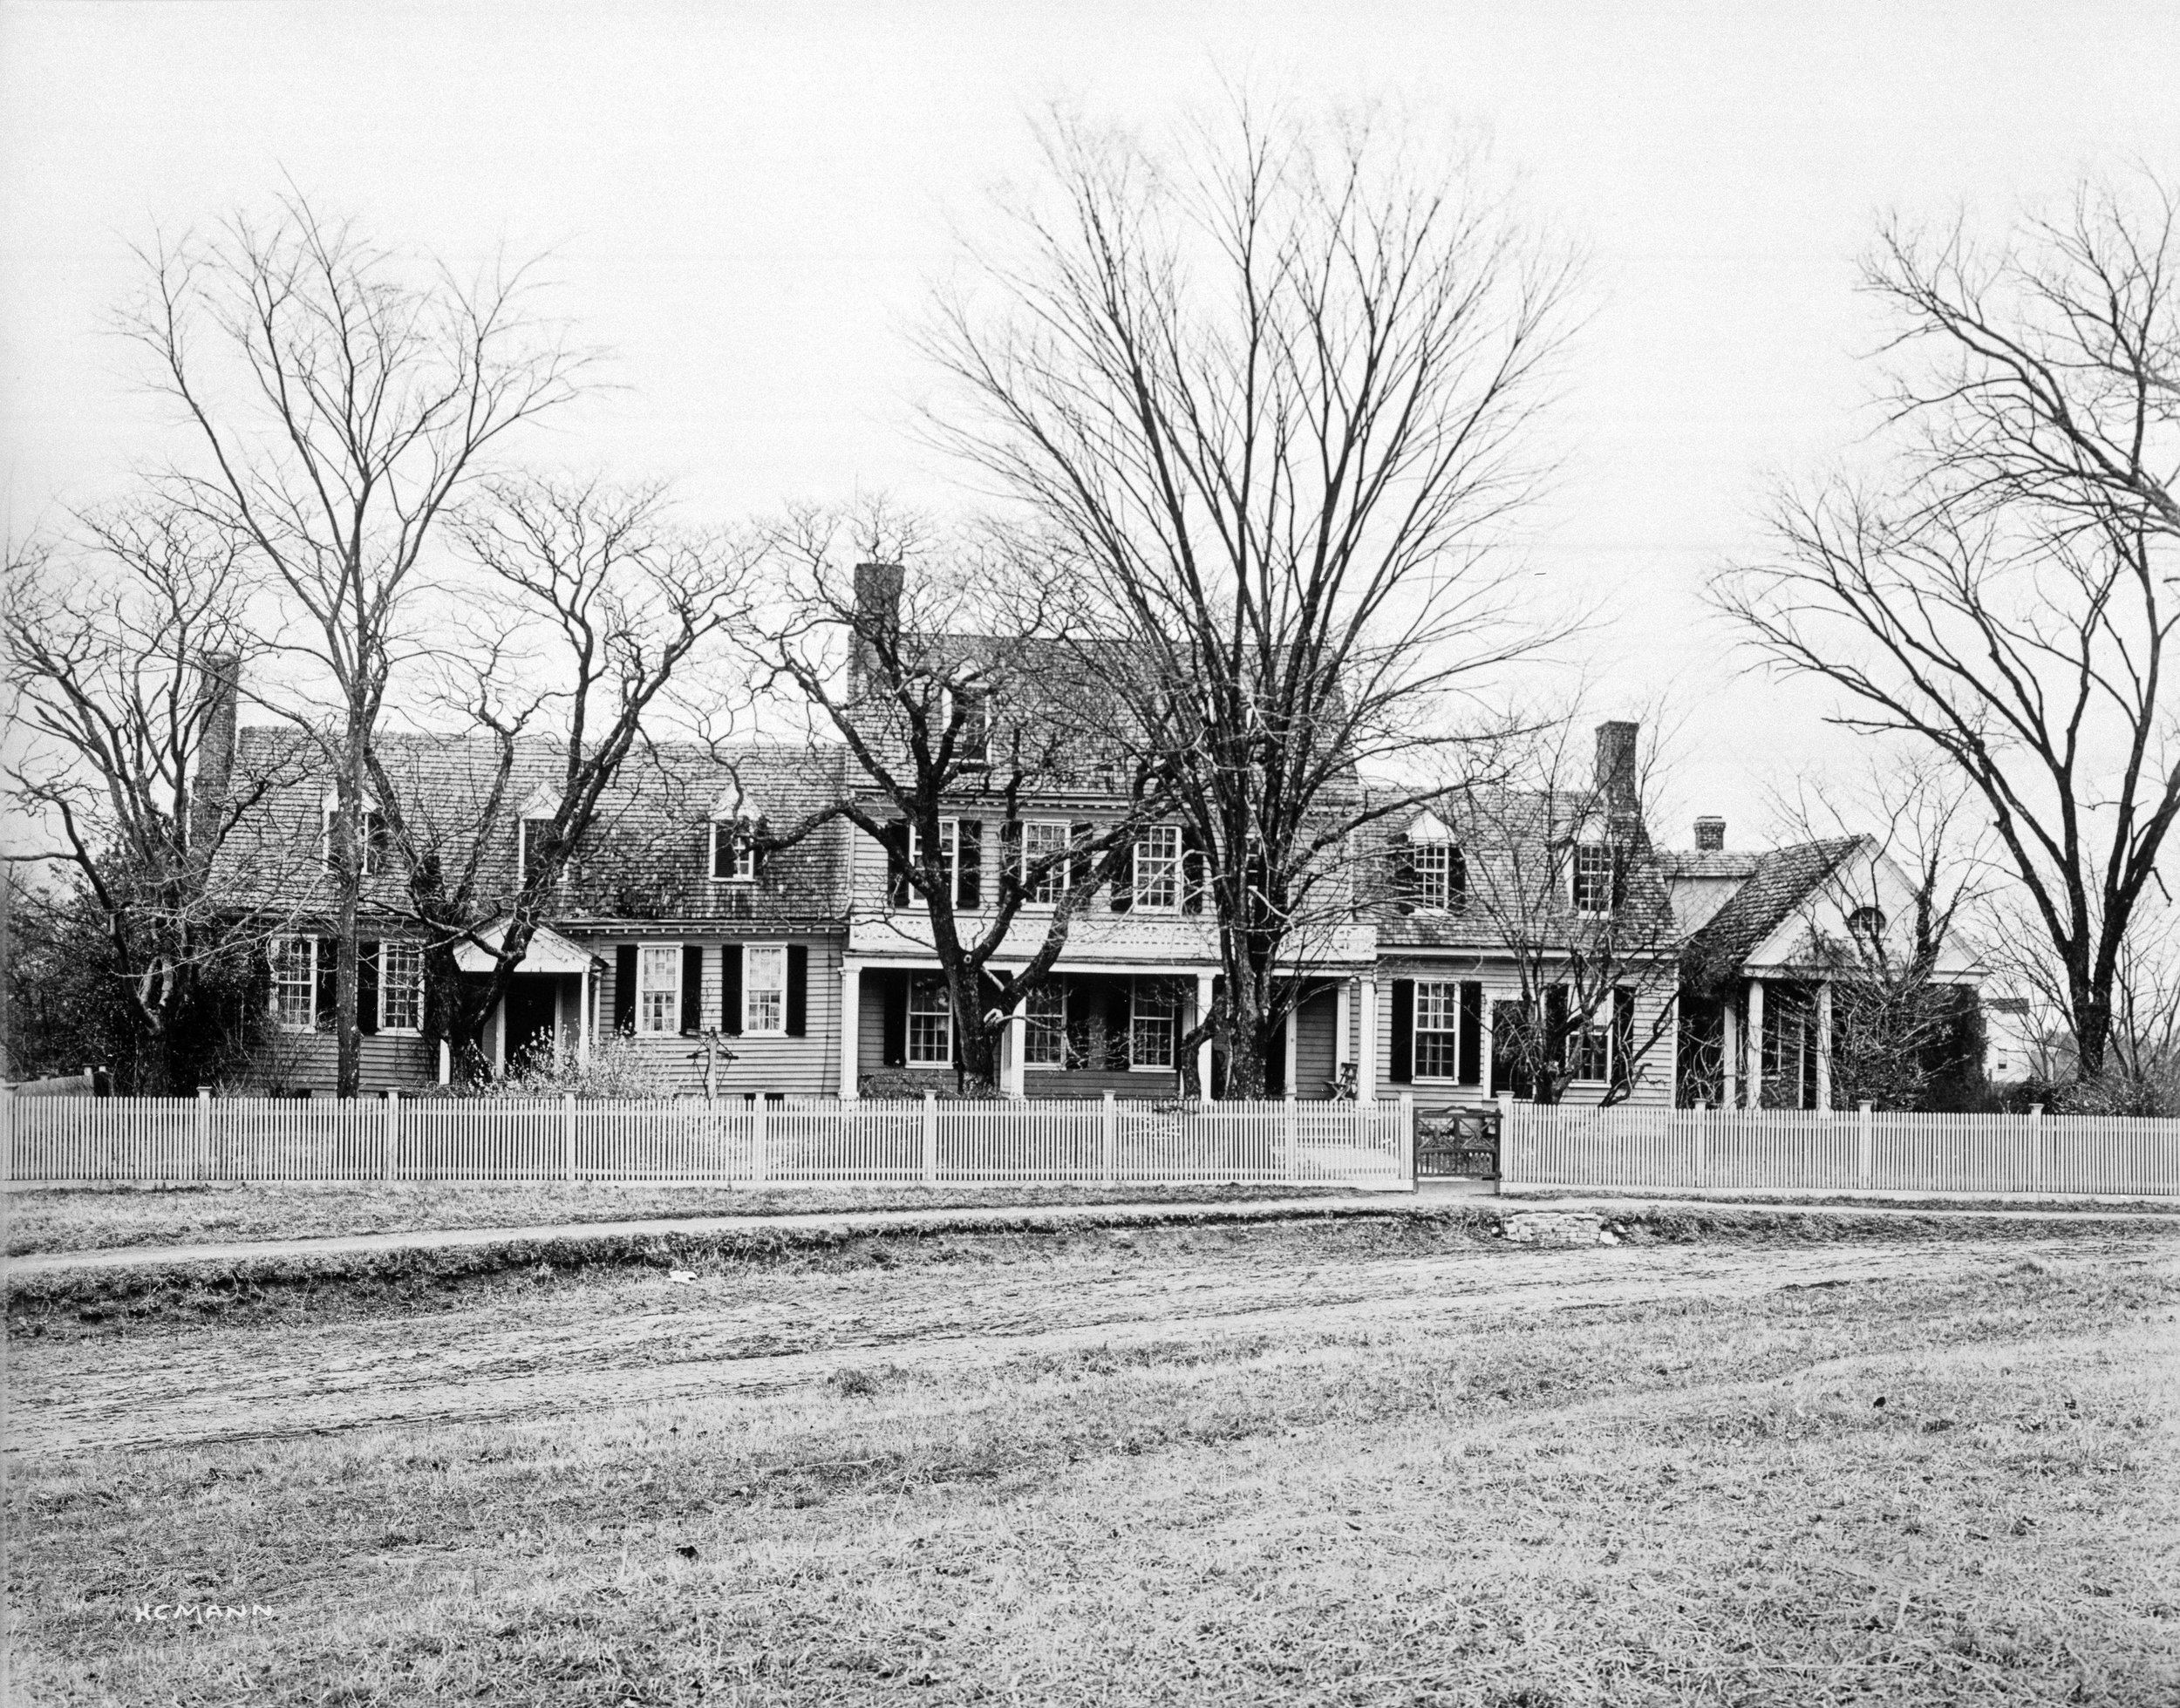 Garrett House, ca. 1907 (Special Collections Research Center, Swem Library, College of William & Mary)